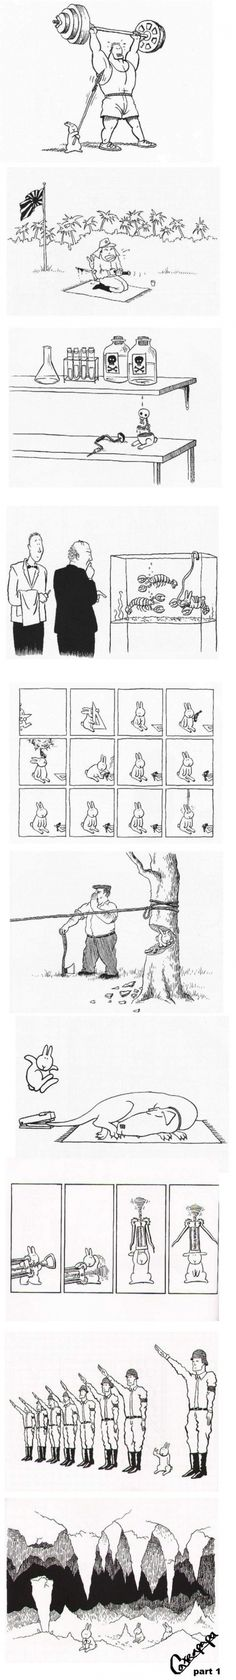 Just a Bunny Suicides Compilation